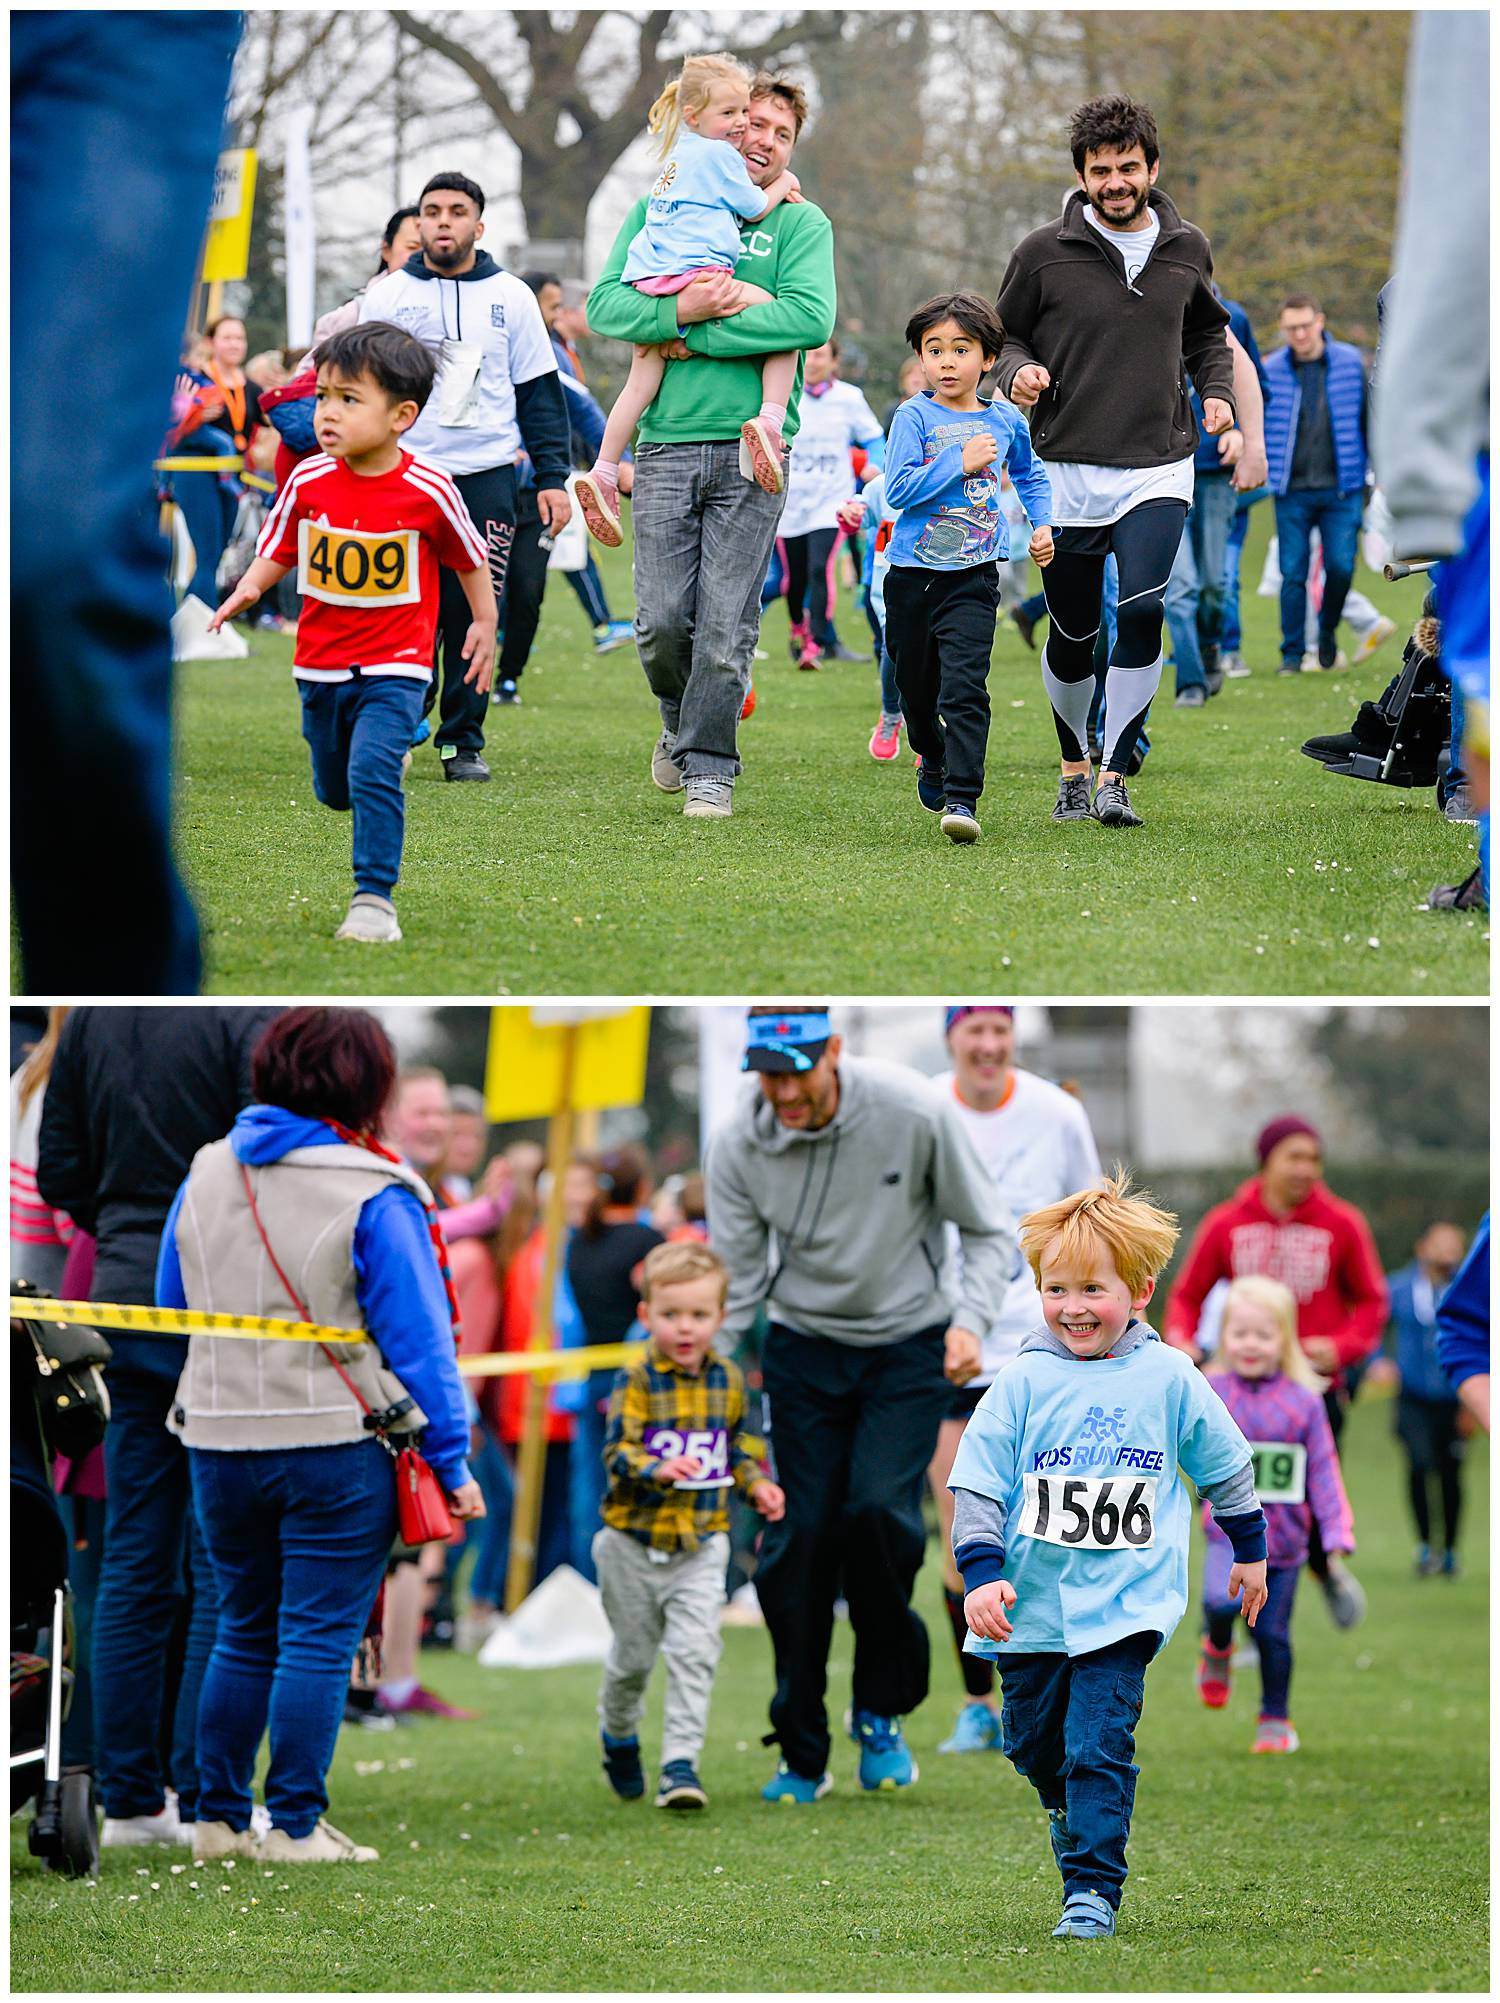 Two photos of smiling boys running in a fun run